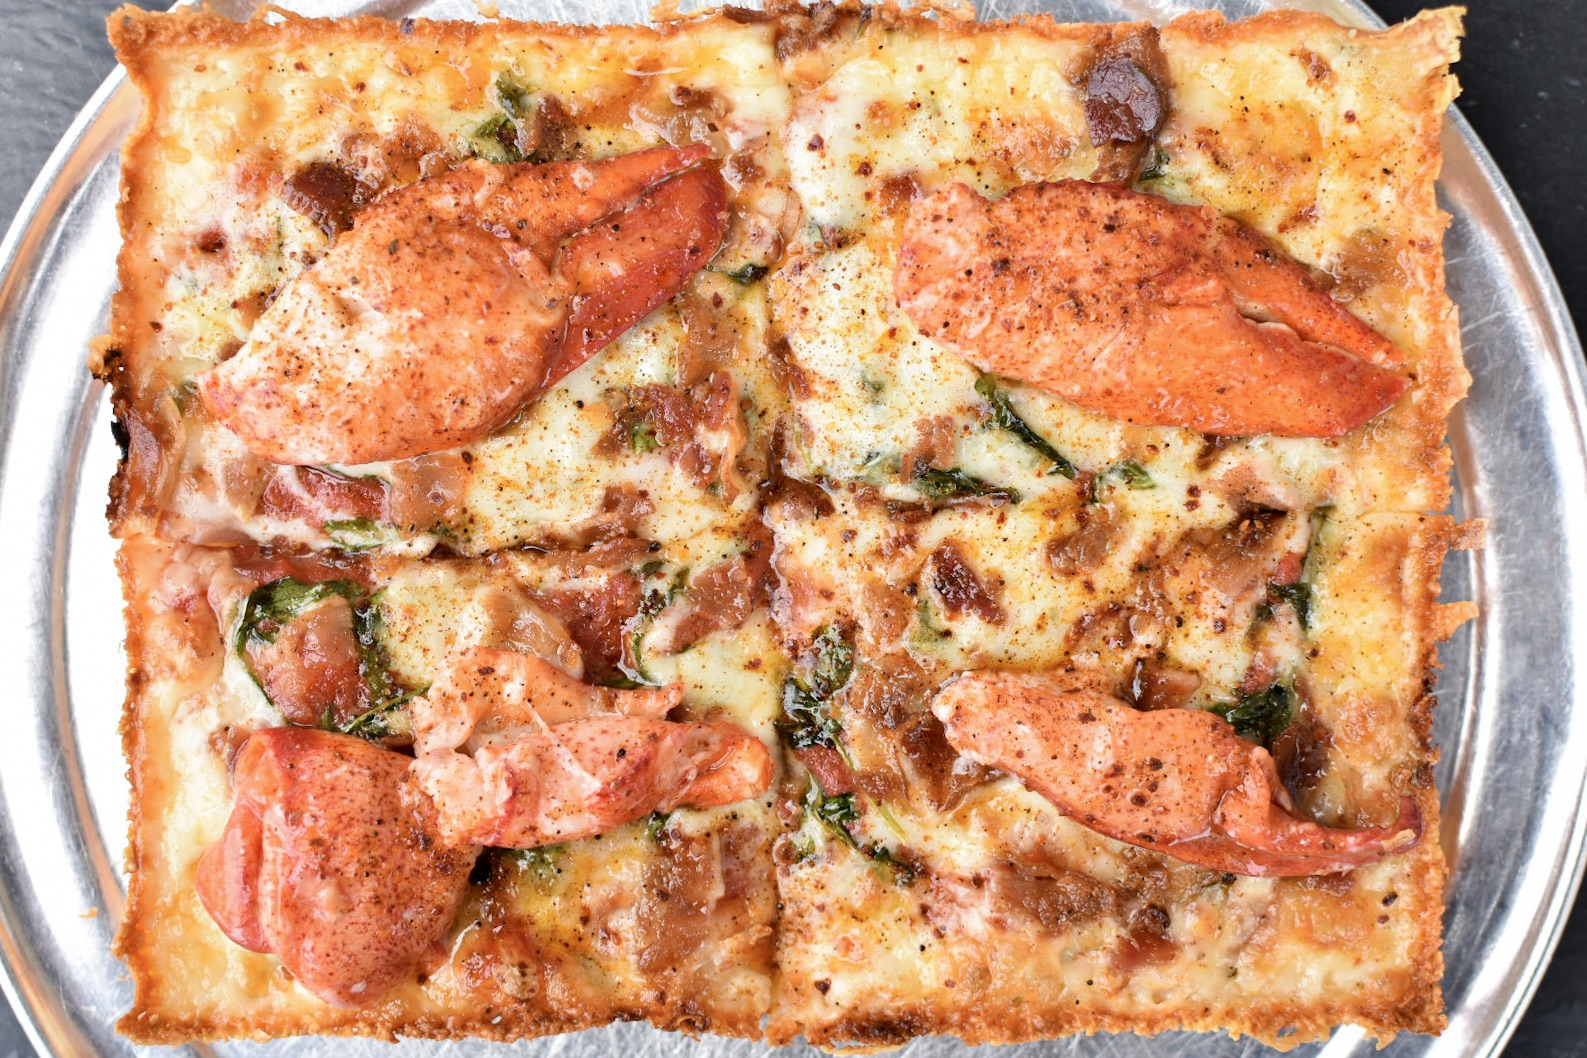 Via 313 and Garbo's lobster pizza